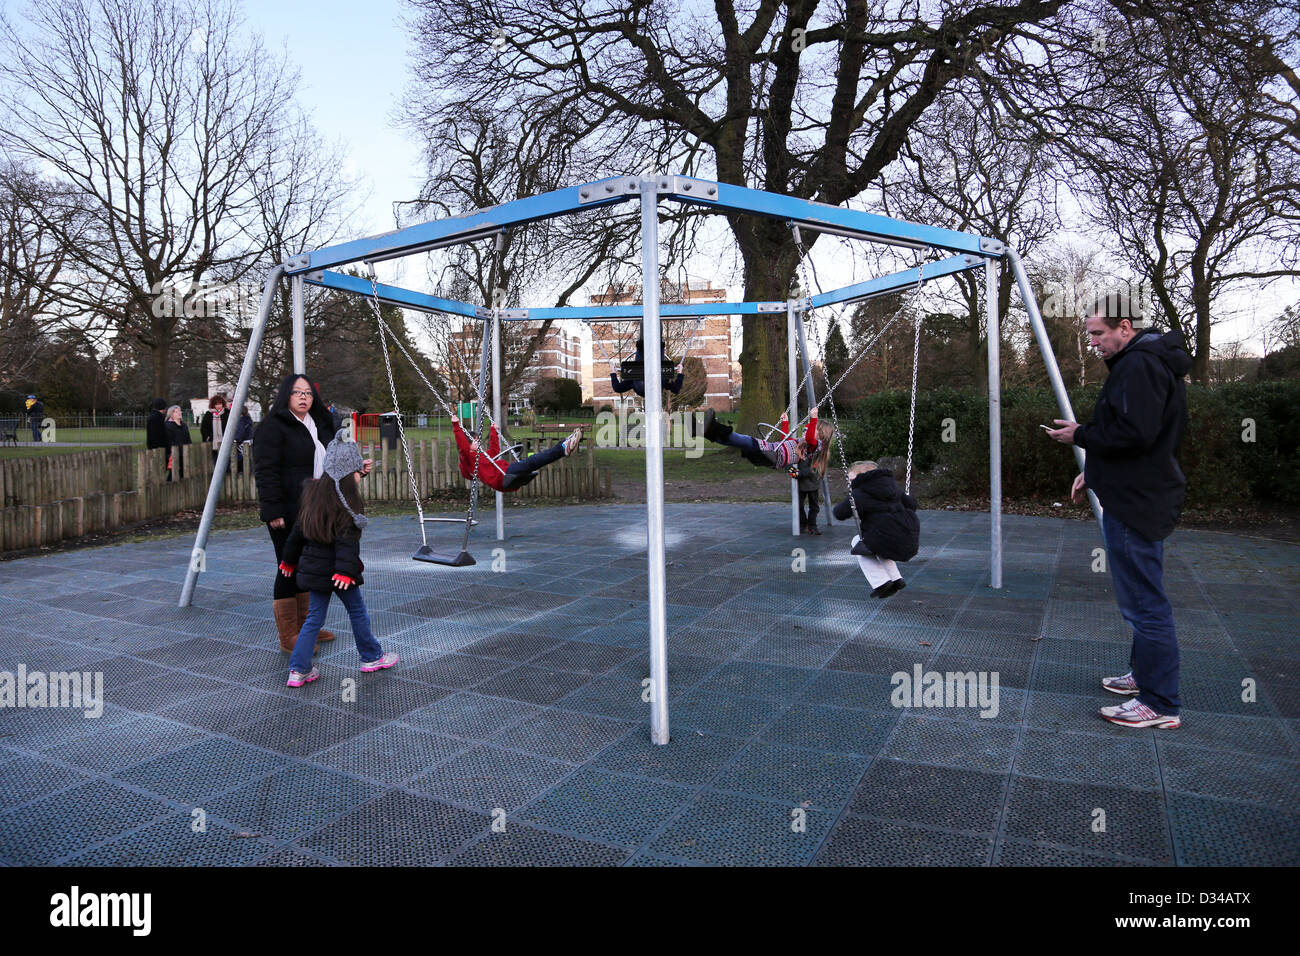 Children On Swings in Playground in the Pleasure Gardens at the Pittville Pump Room Cheltenham Gloucestershire England - Stock Image